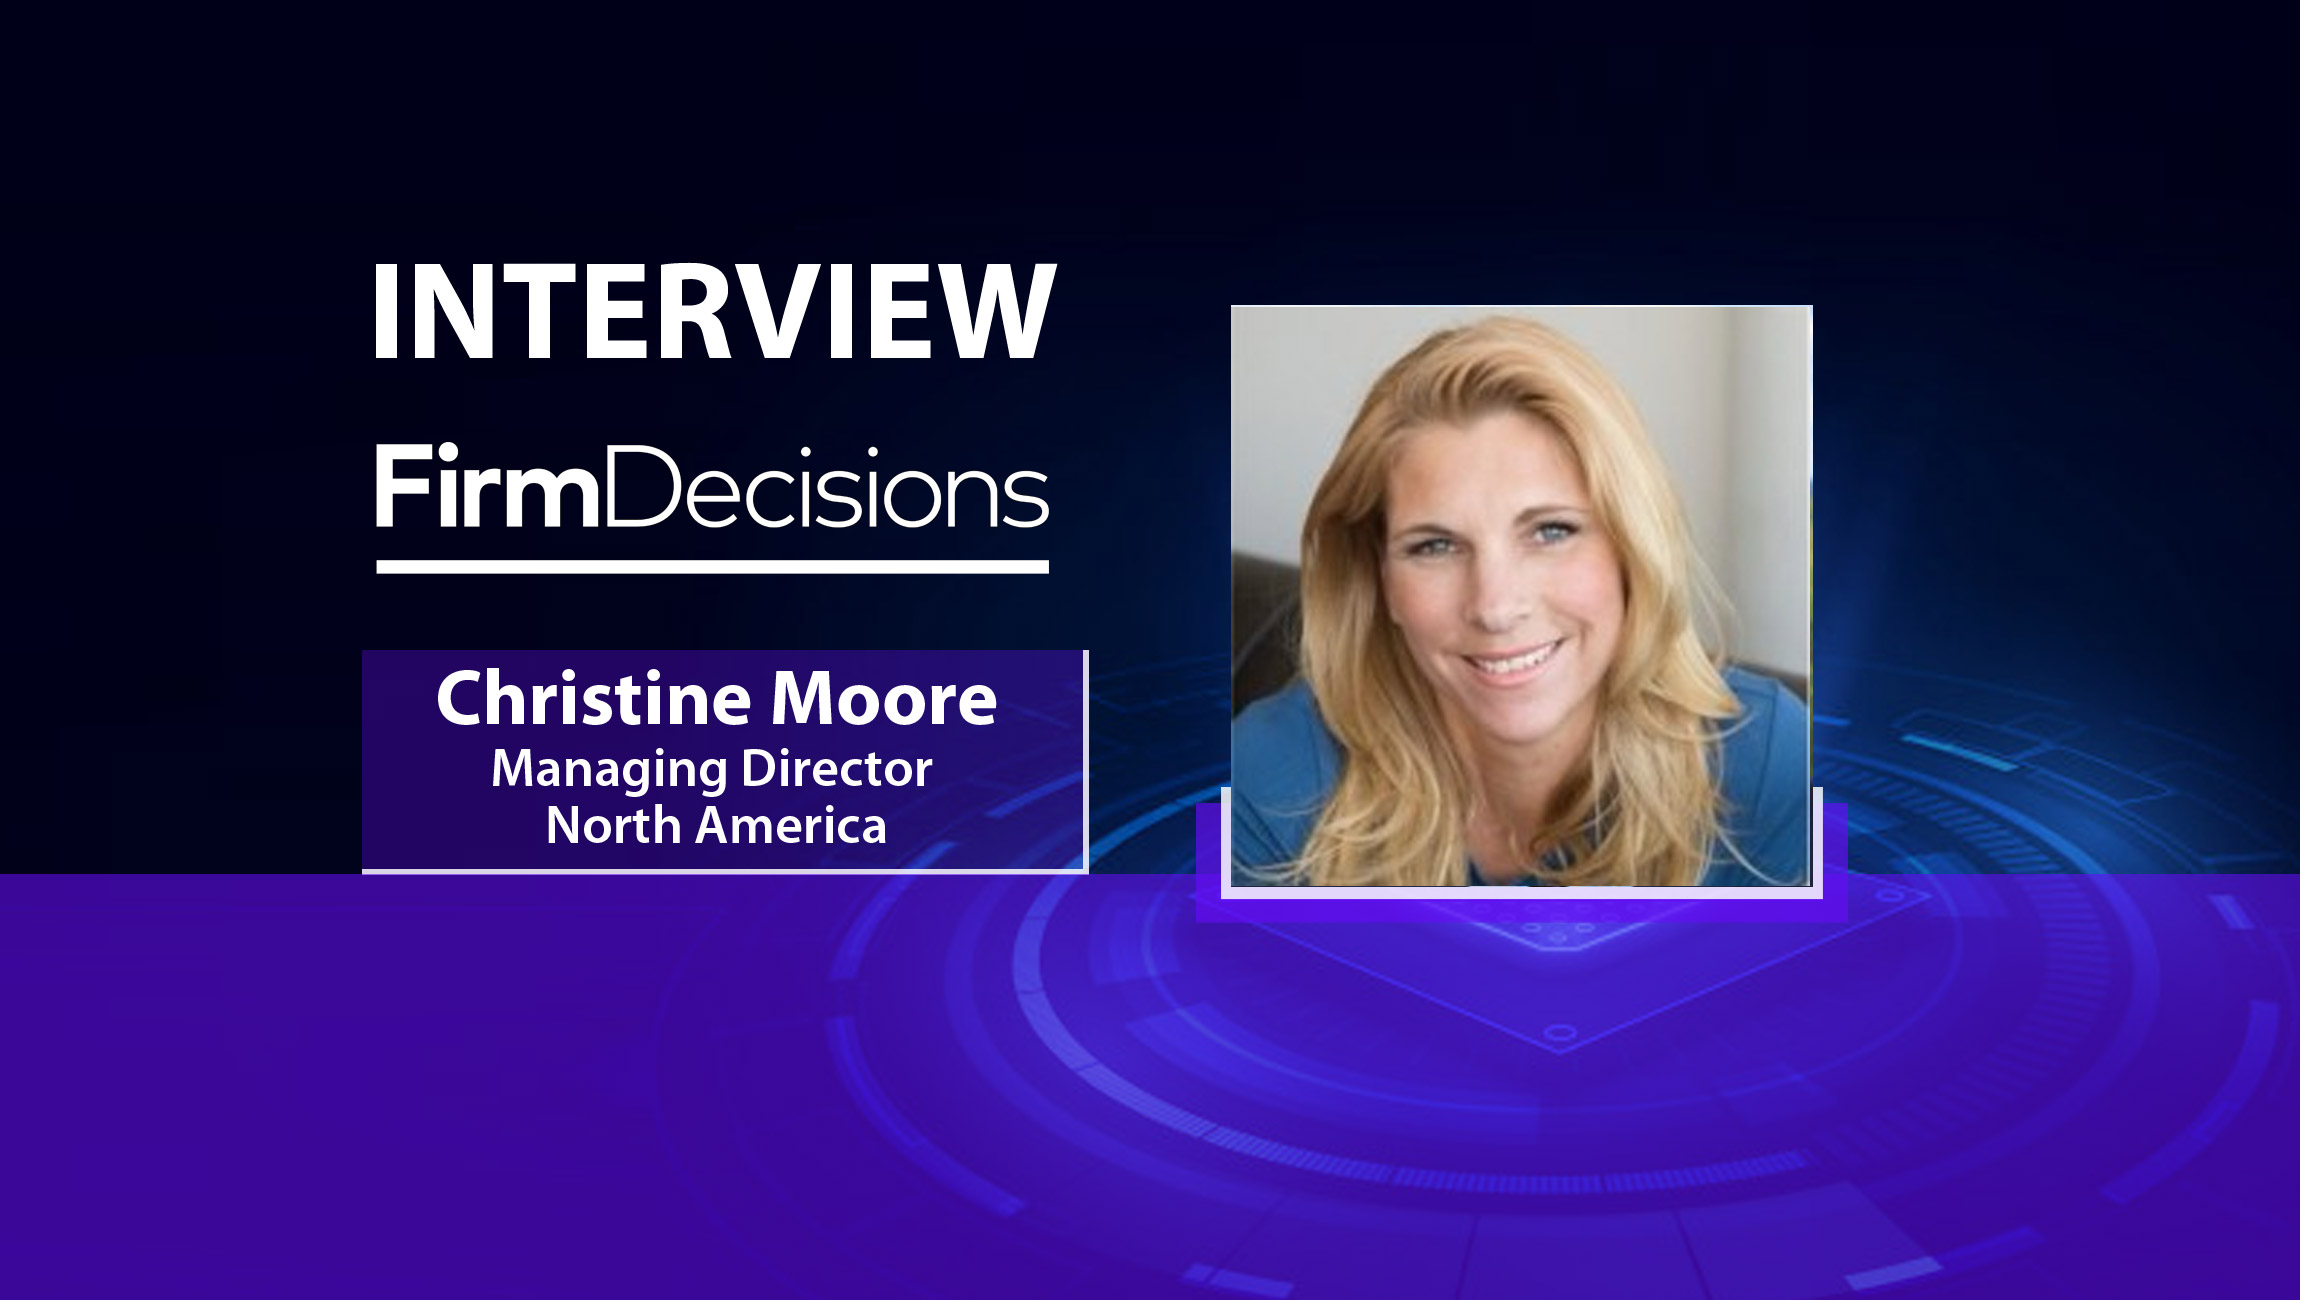 MarTech Interview with Christine Moore, Managing Director – North America at FirmDecisions